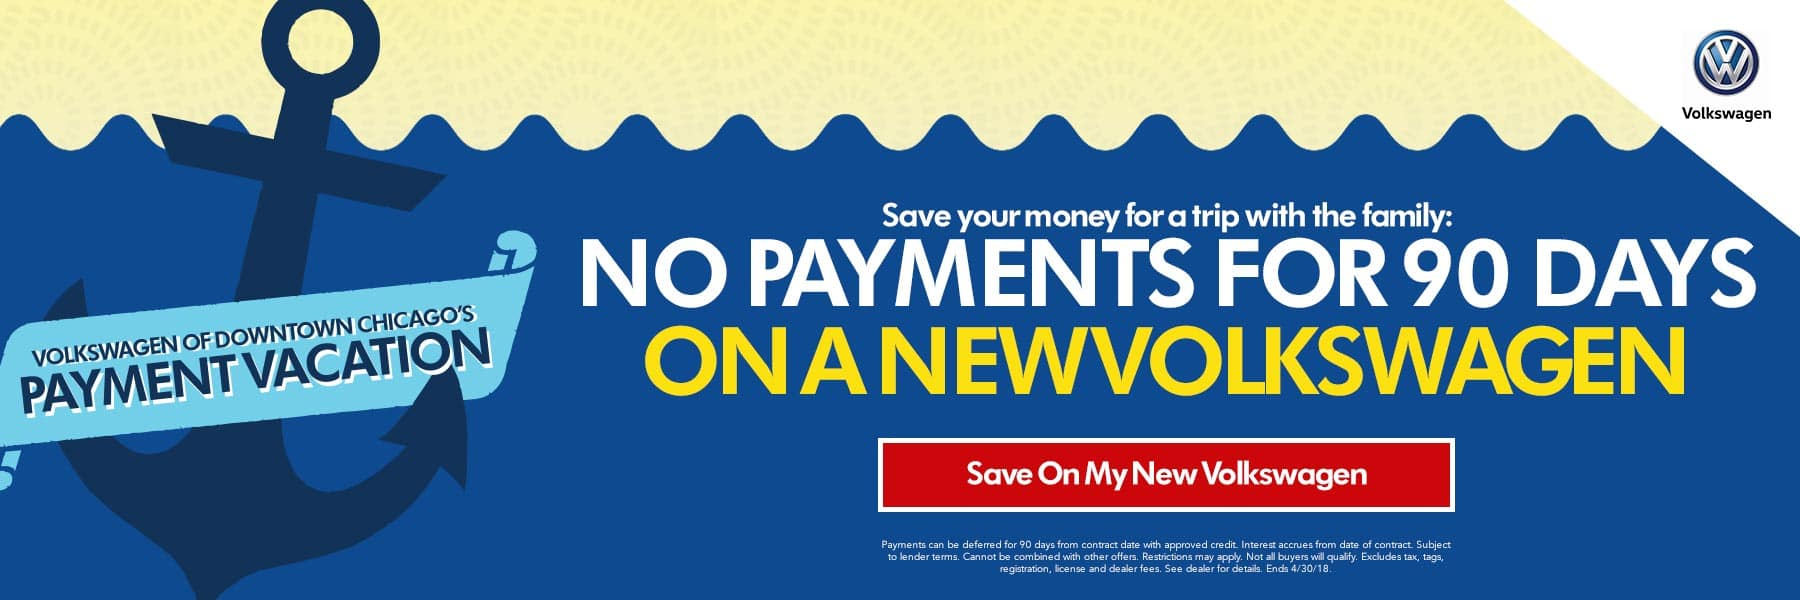 No Payments For 90 Days On A New Volkswagen - Save On My New Volkswagen - Offer Expires 4/30/18